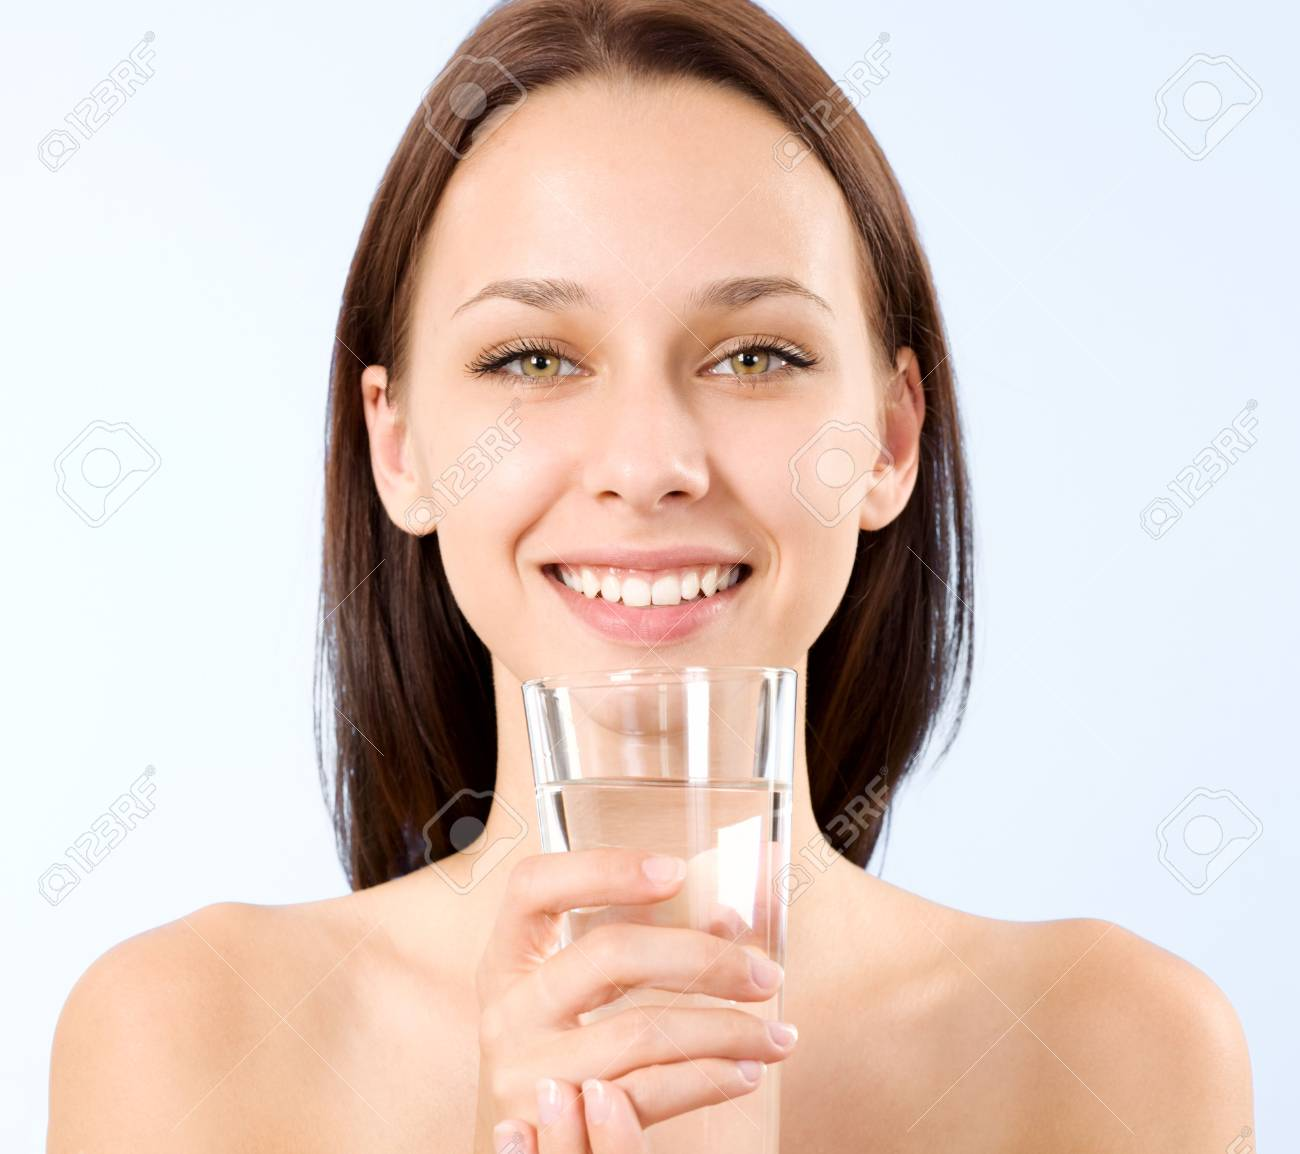 a beautiful young woman holding a glass of water Stock Photo - 6666256